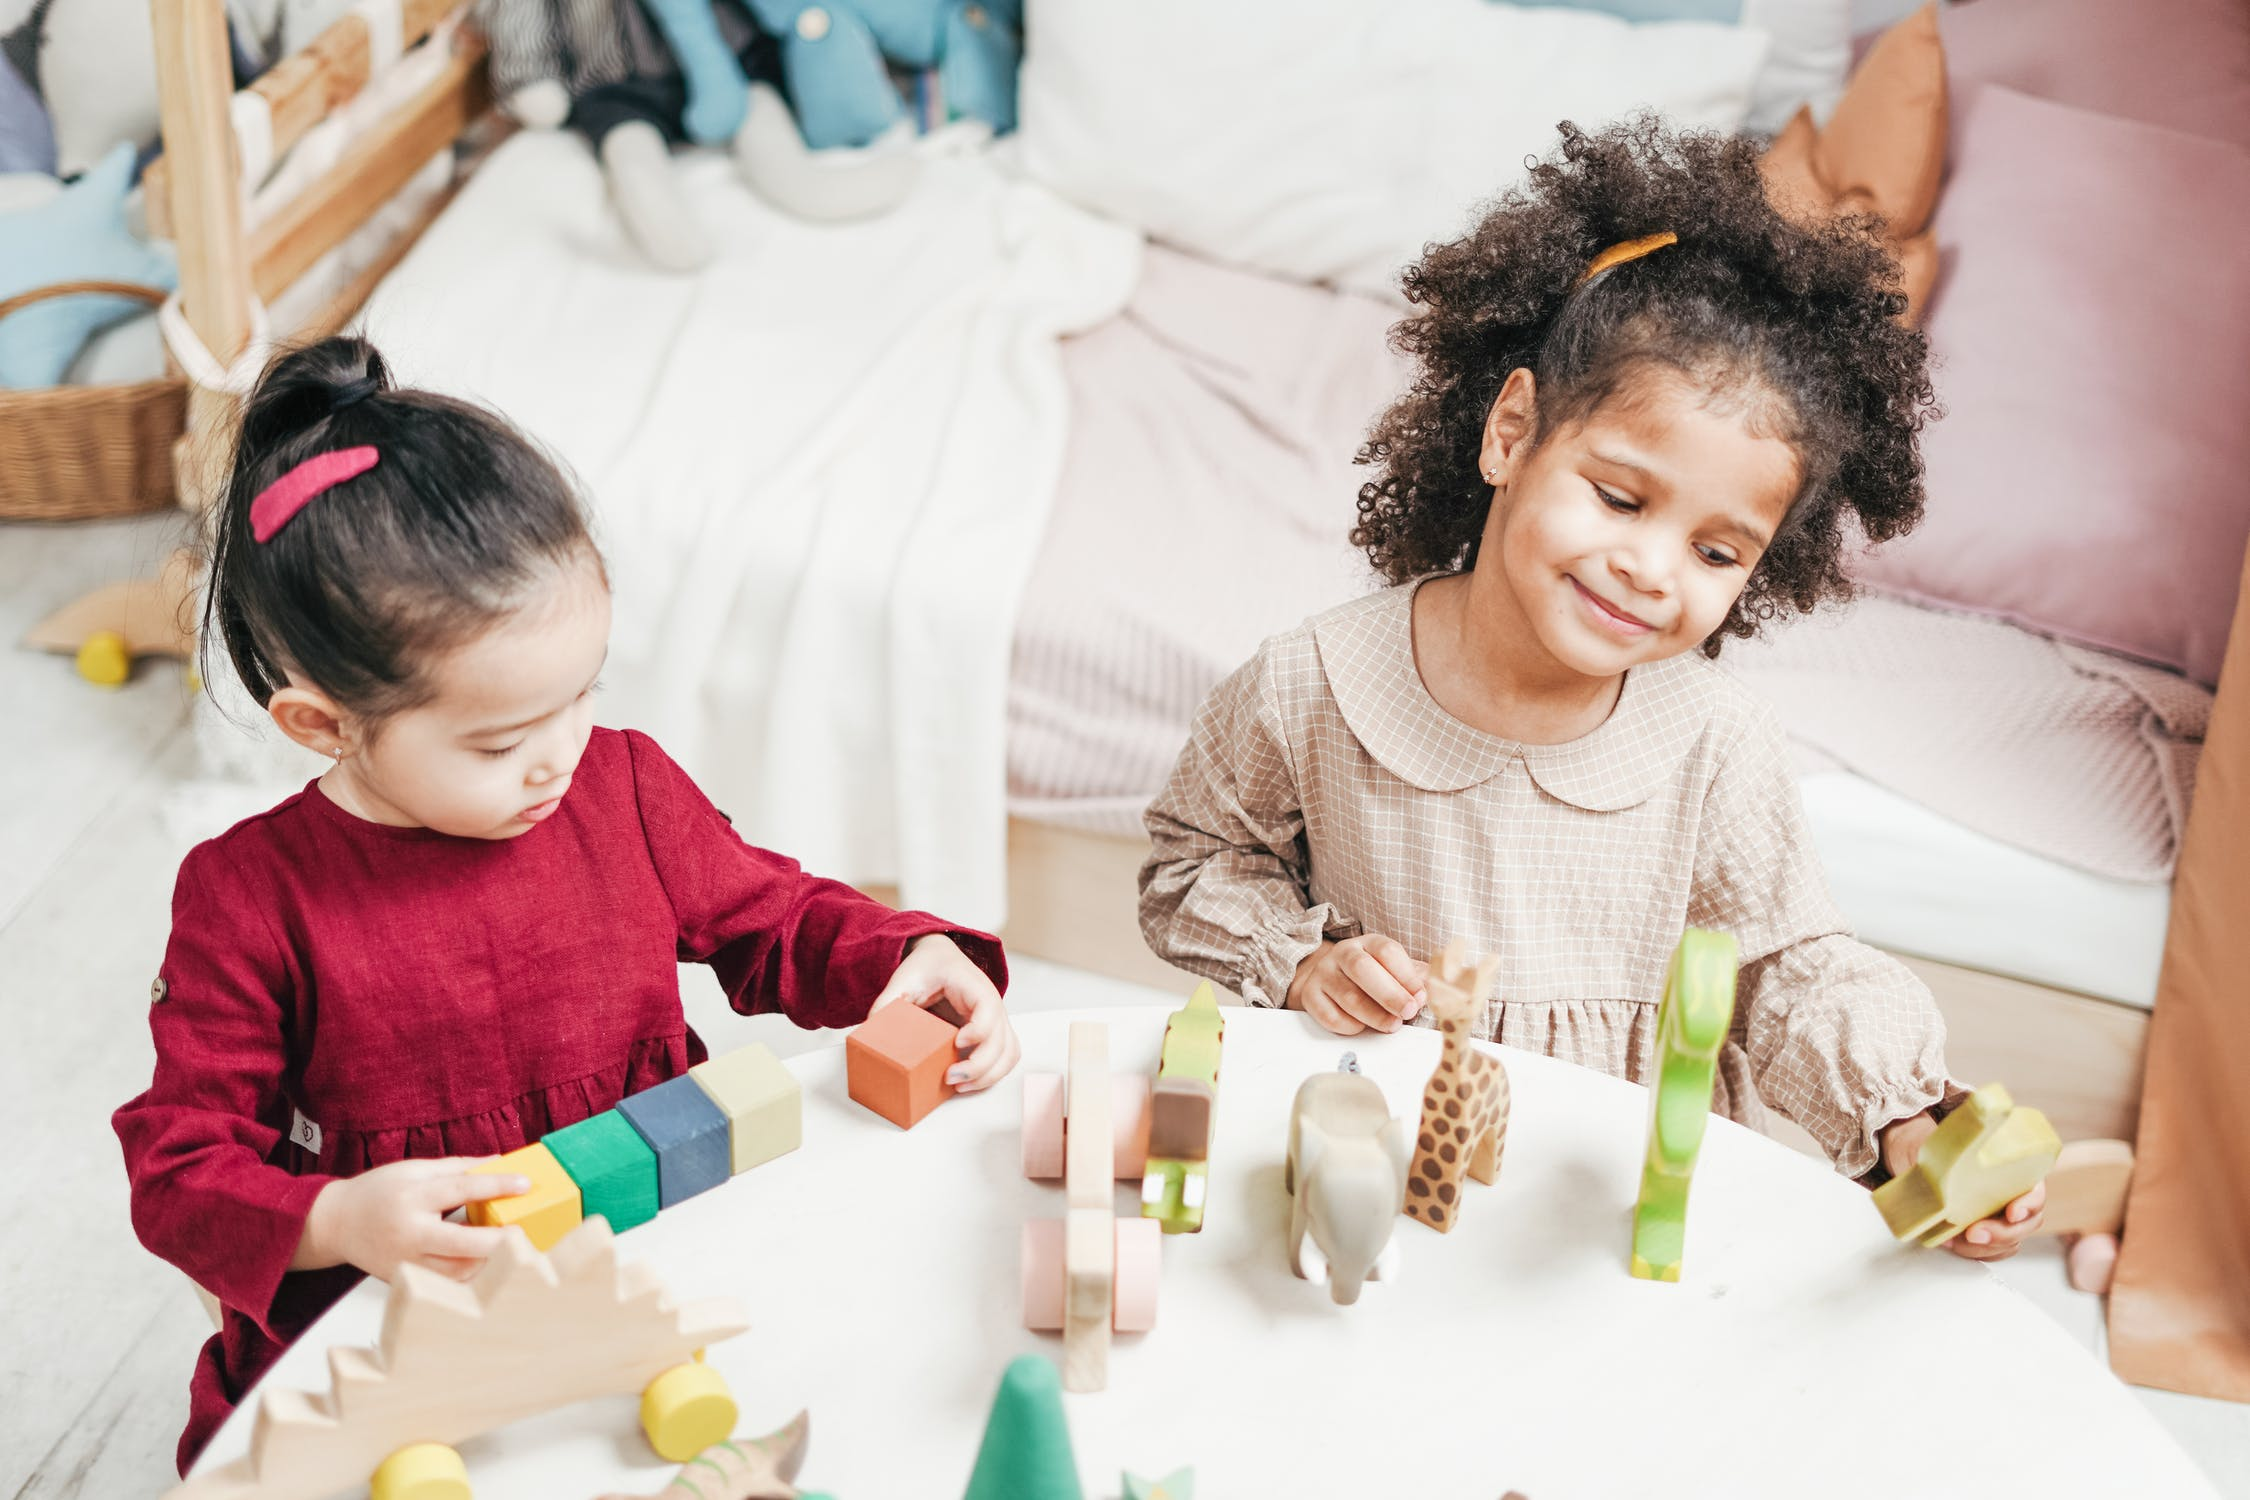 Creating stations for kids to play at will make parties easy to organize.